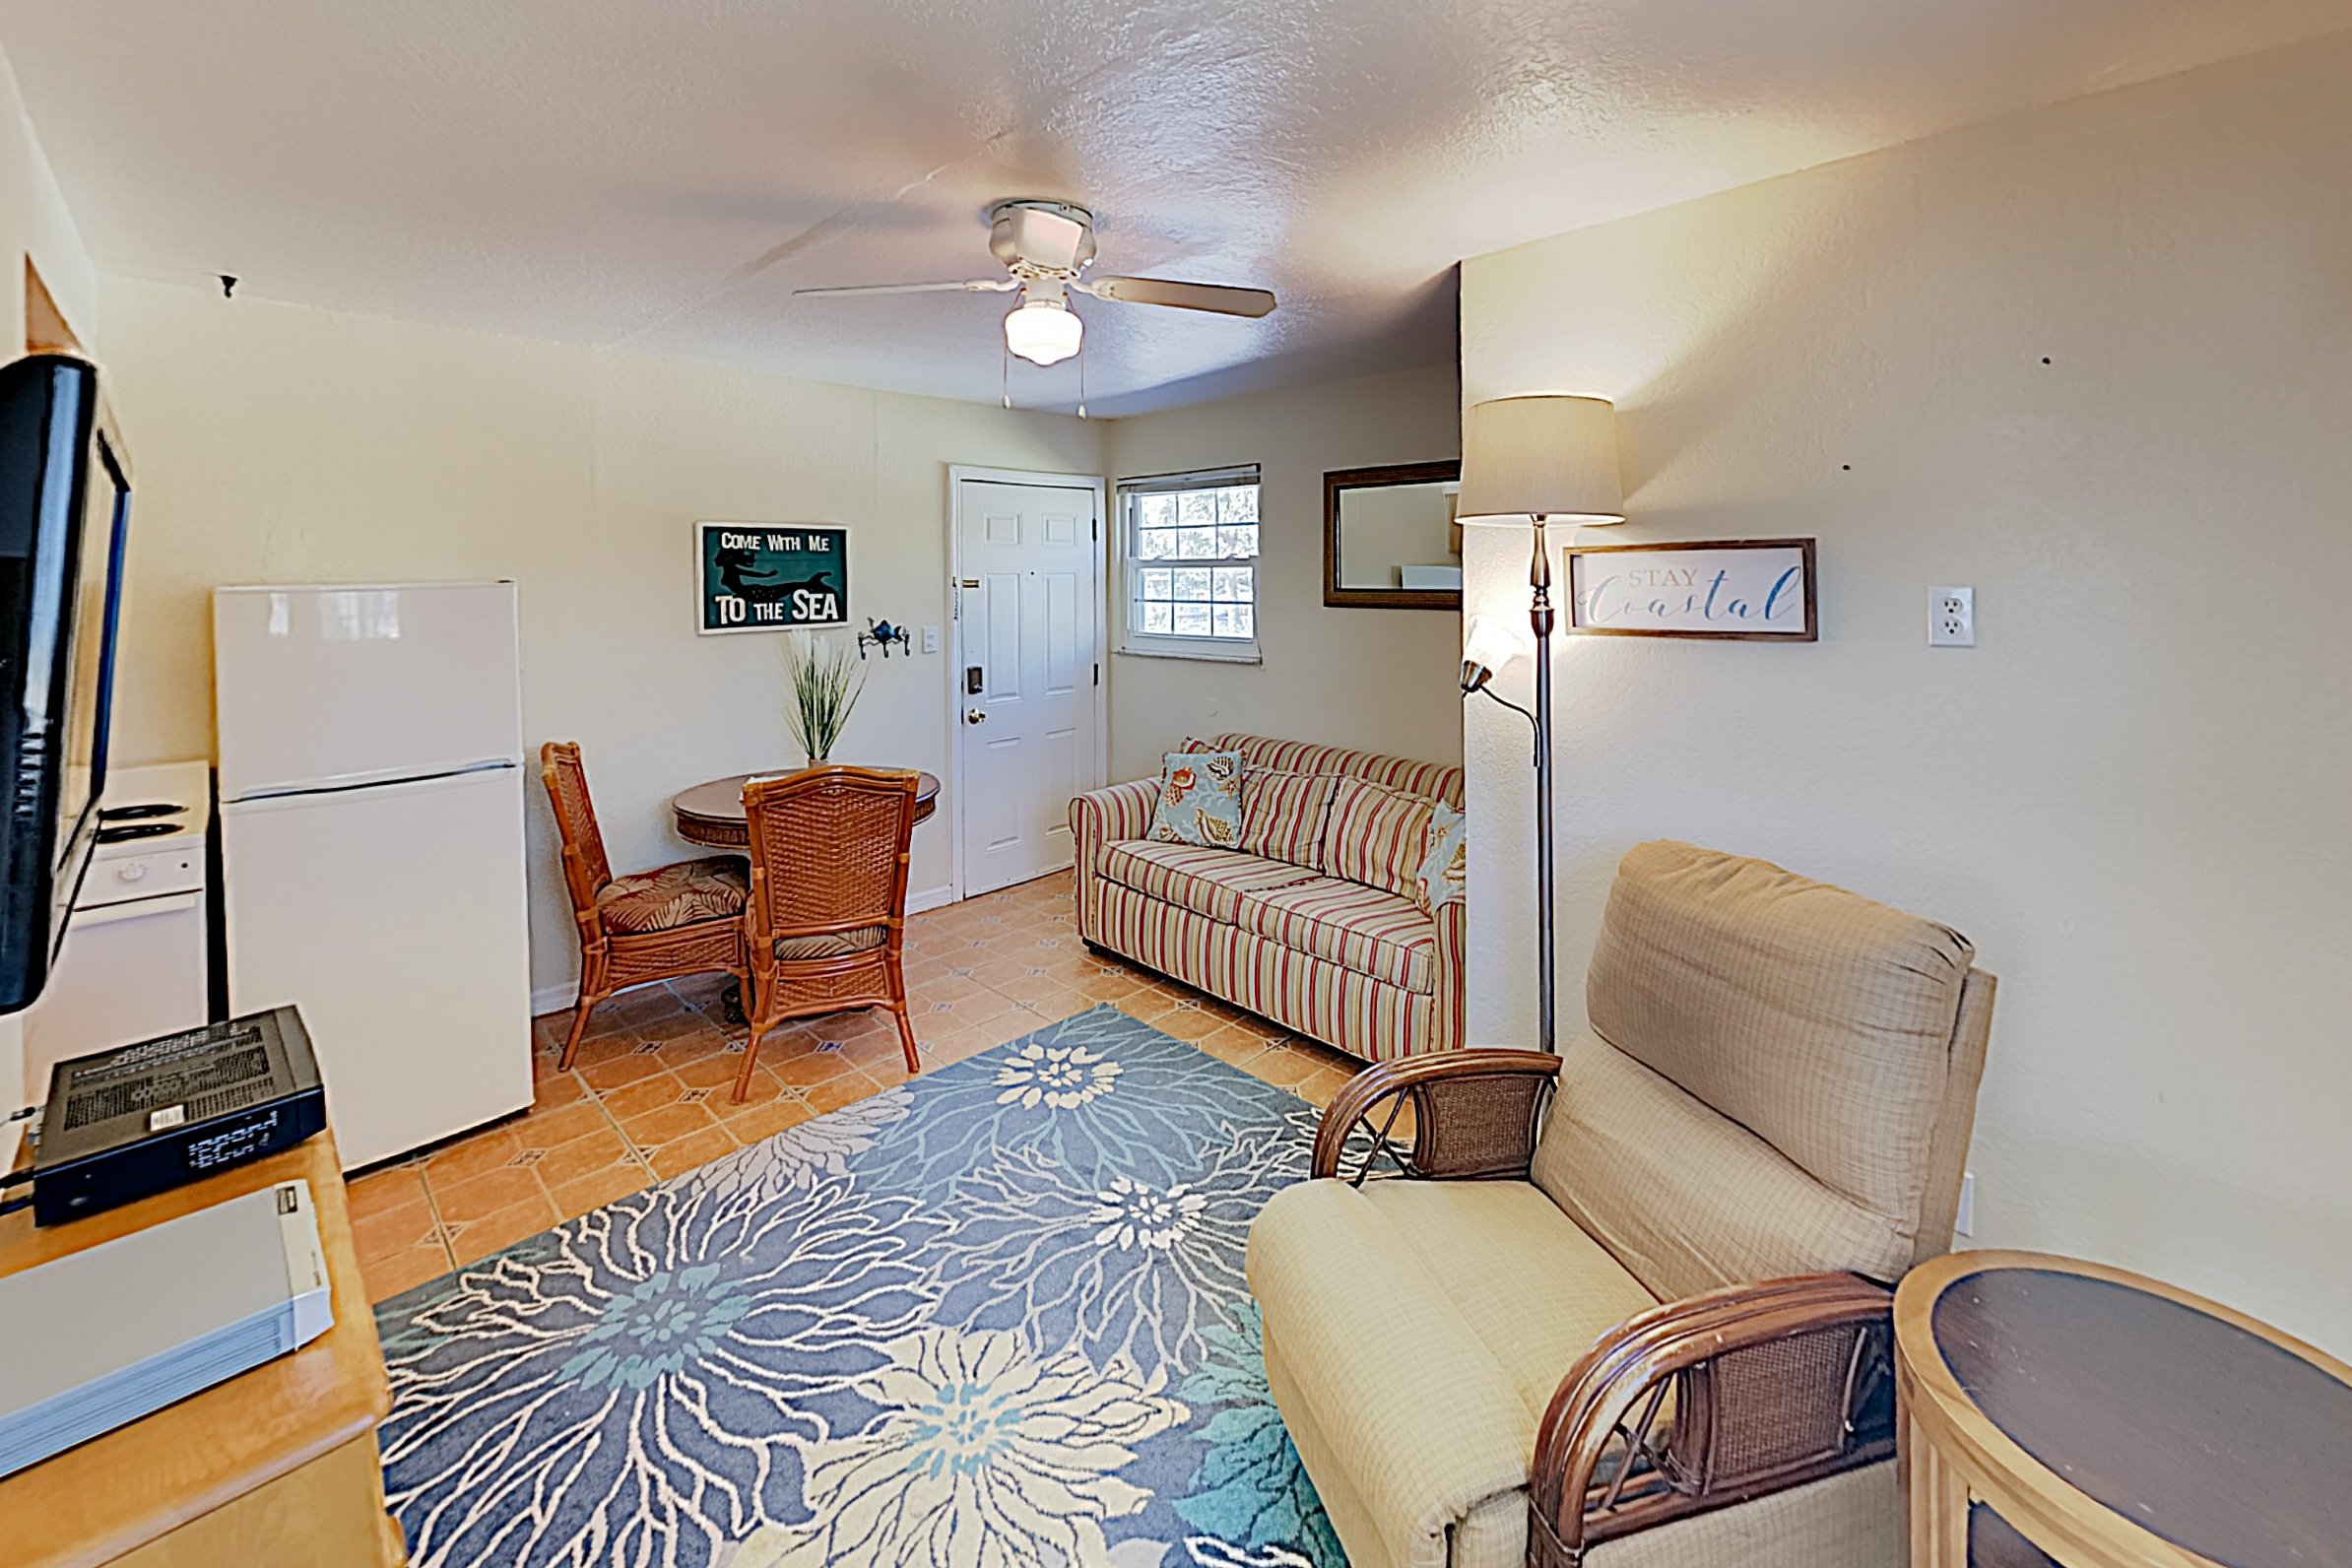 Maderia Beach FL Vacation Rental Welcome to the